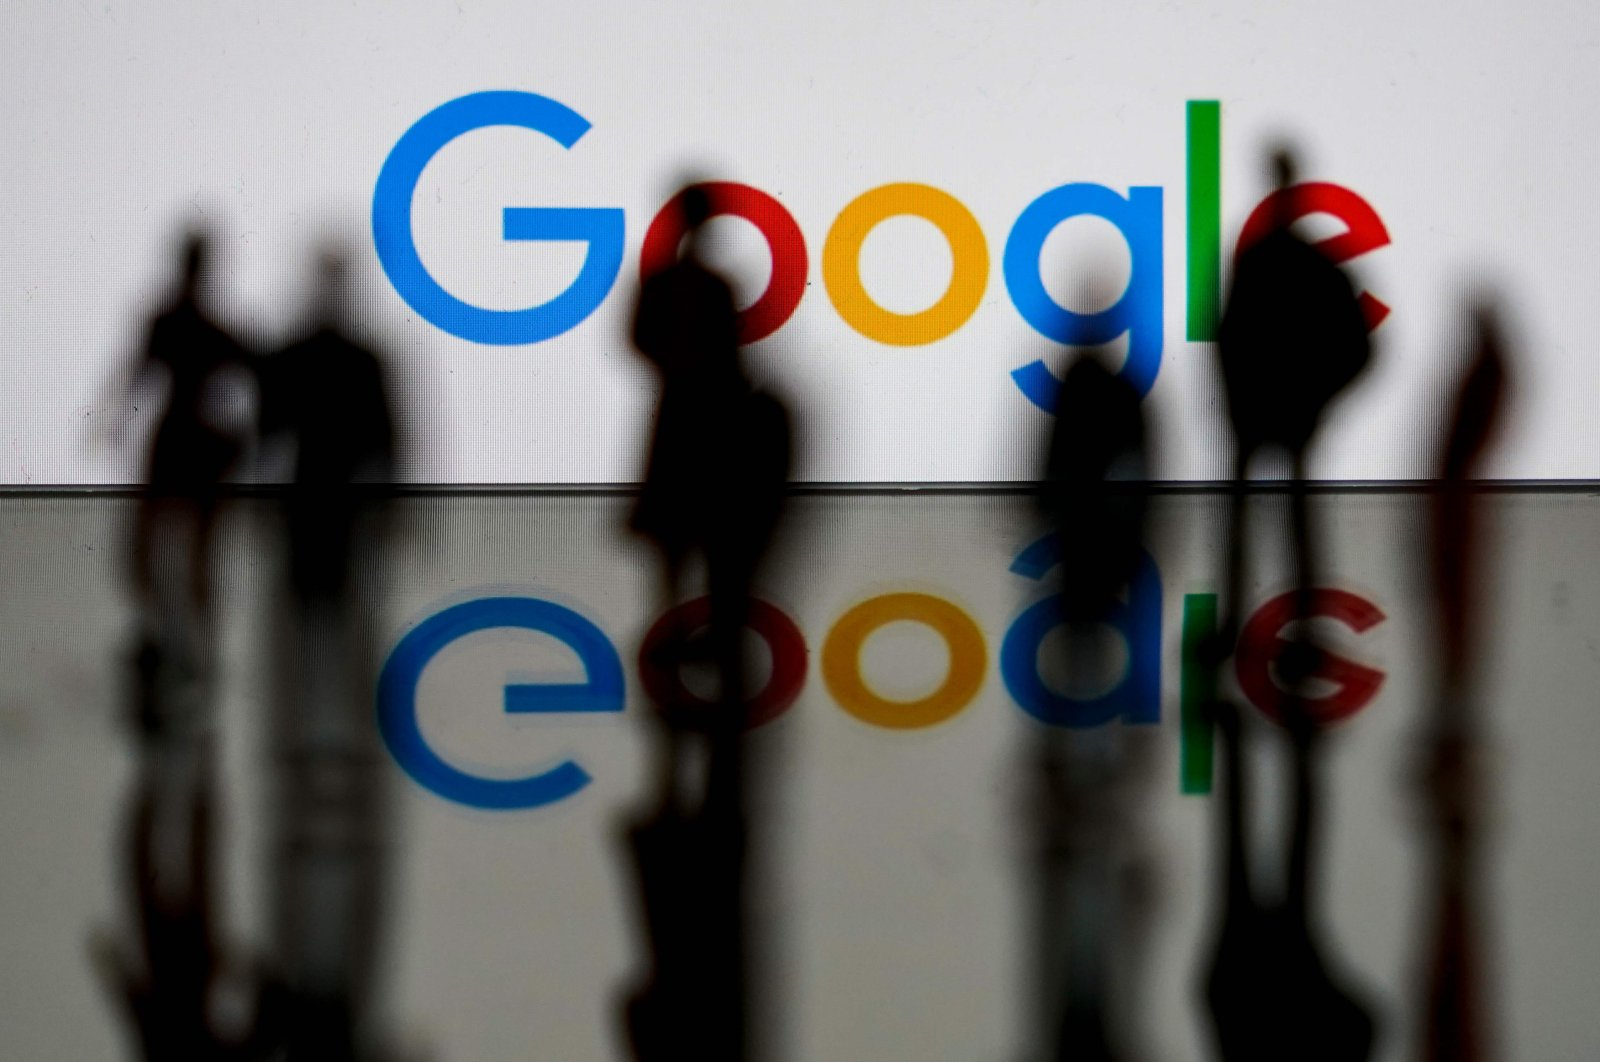 The Google logo is pictured in Brussels, Feb. 14, 2020. (AFP Photo)